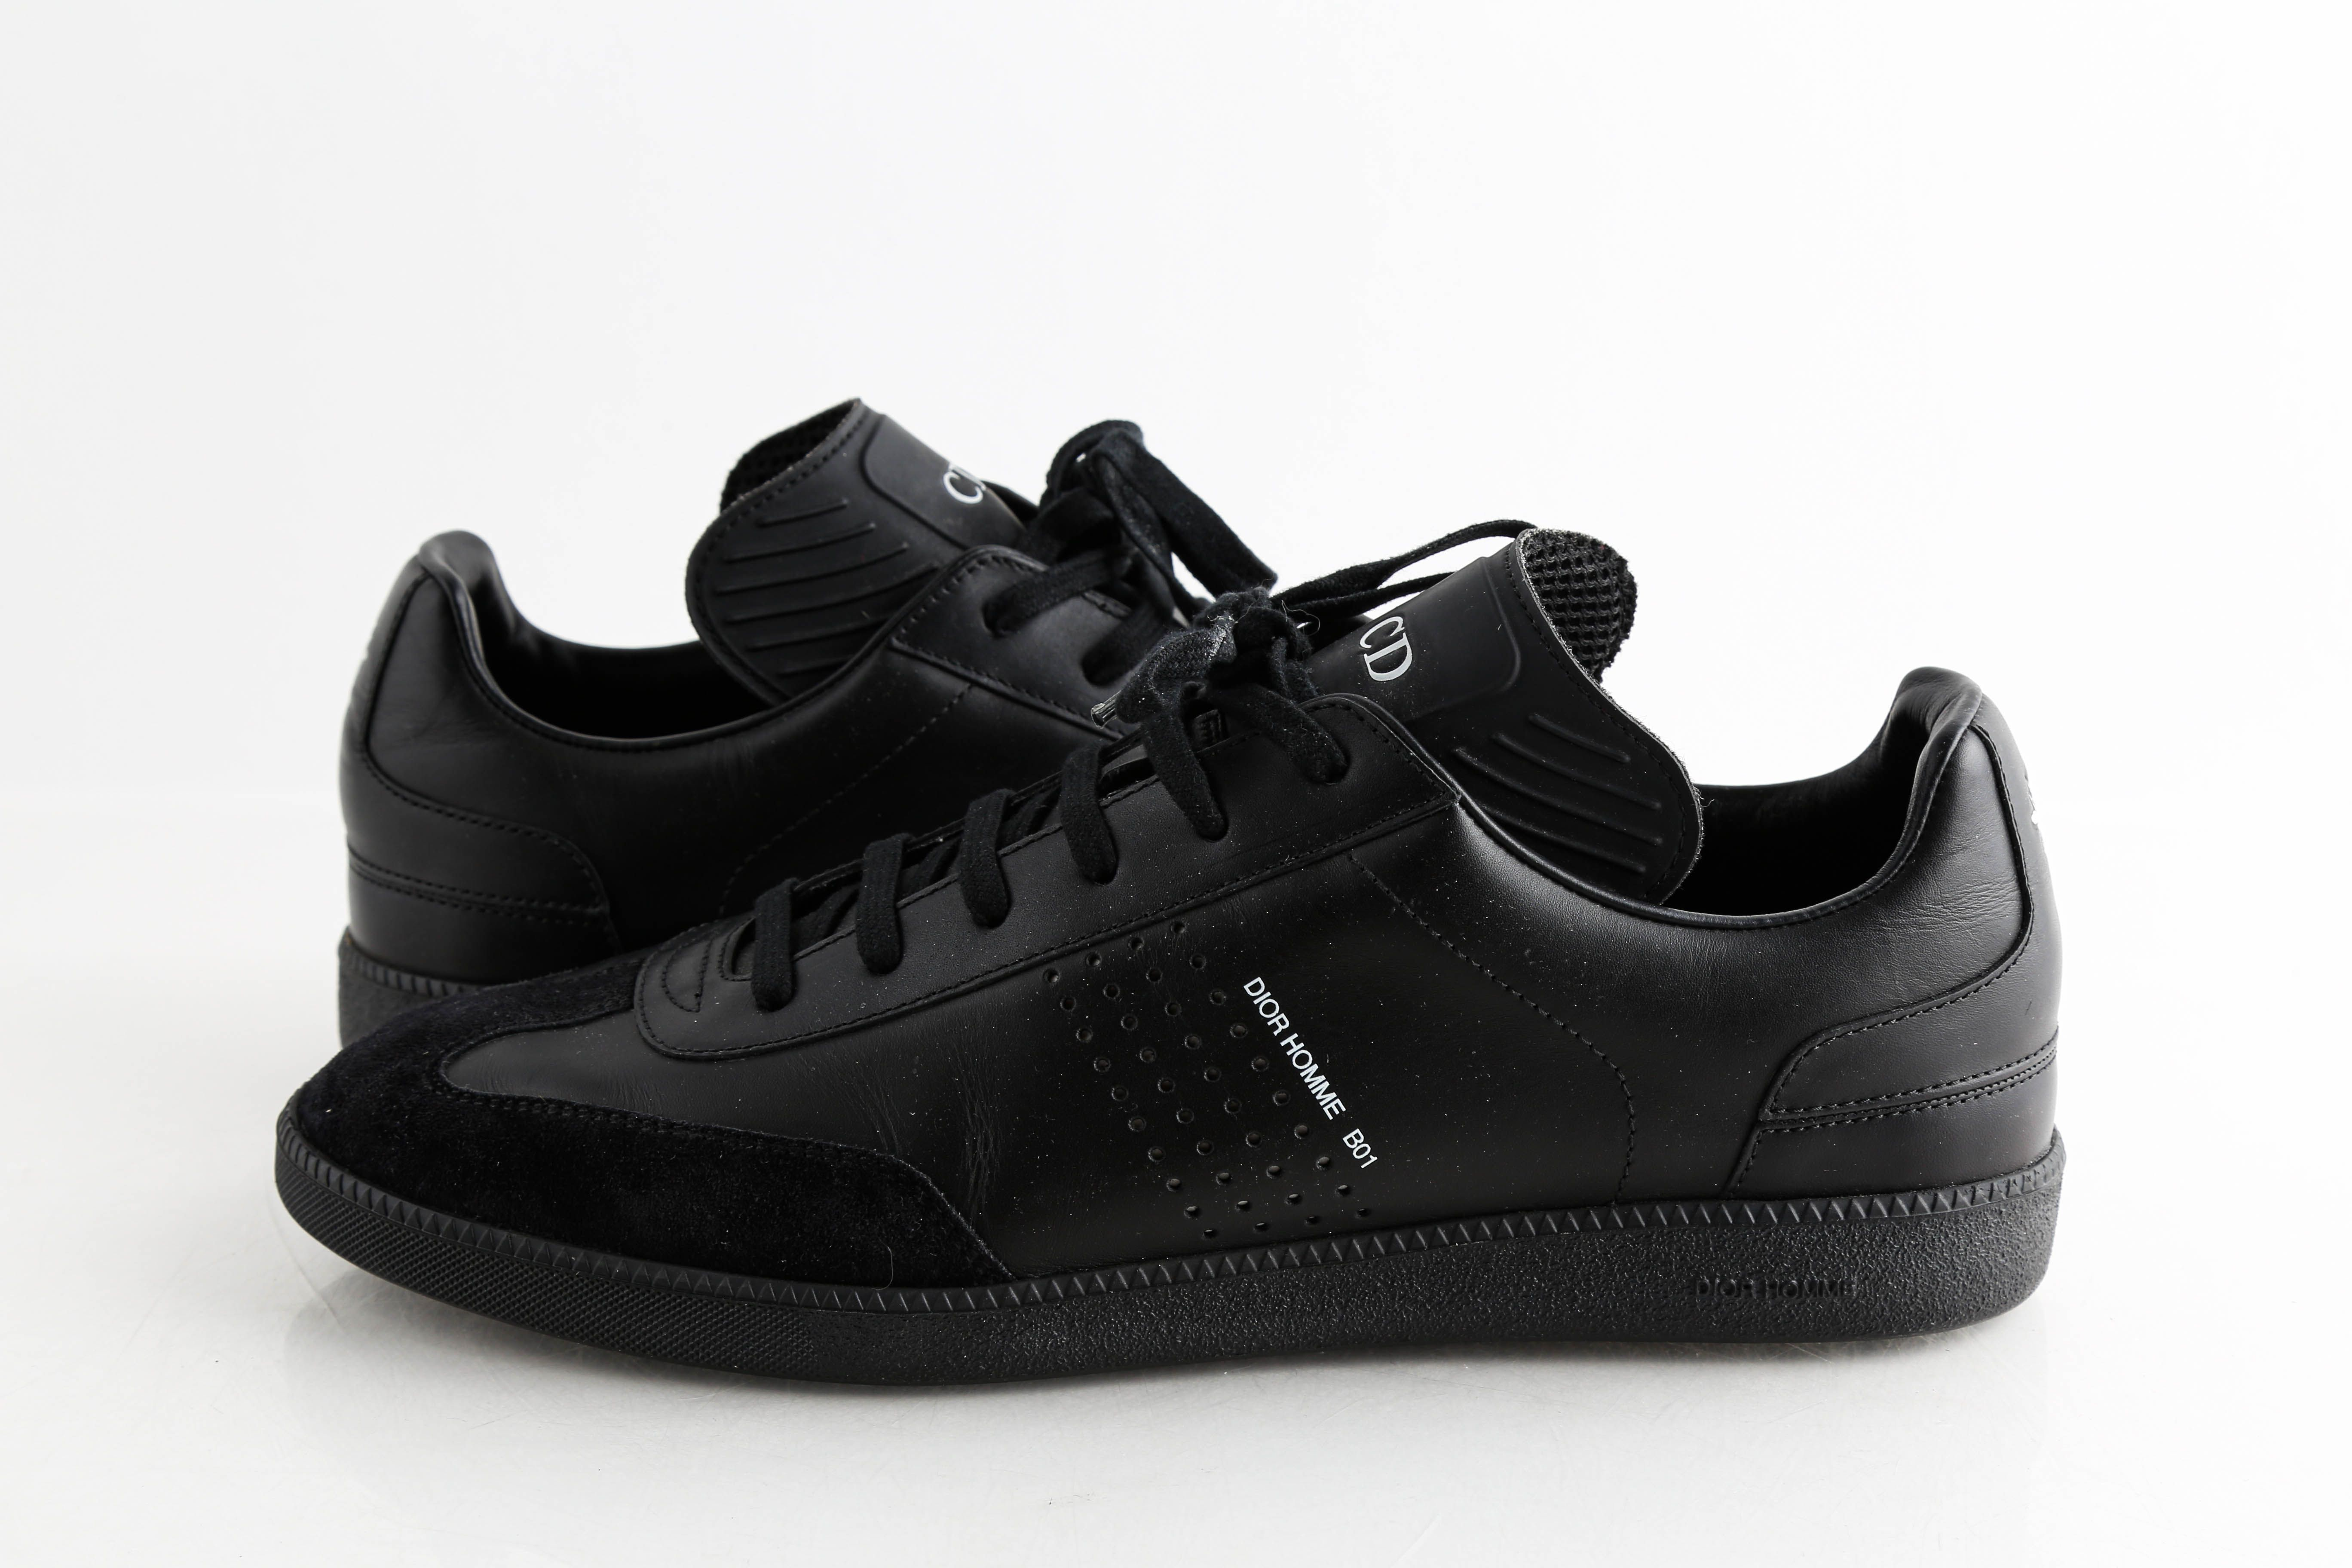 Dior Homme B01 Sneakers | LePrix